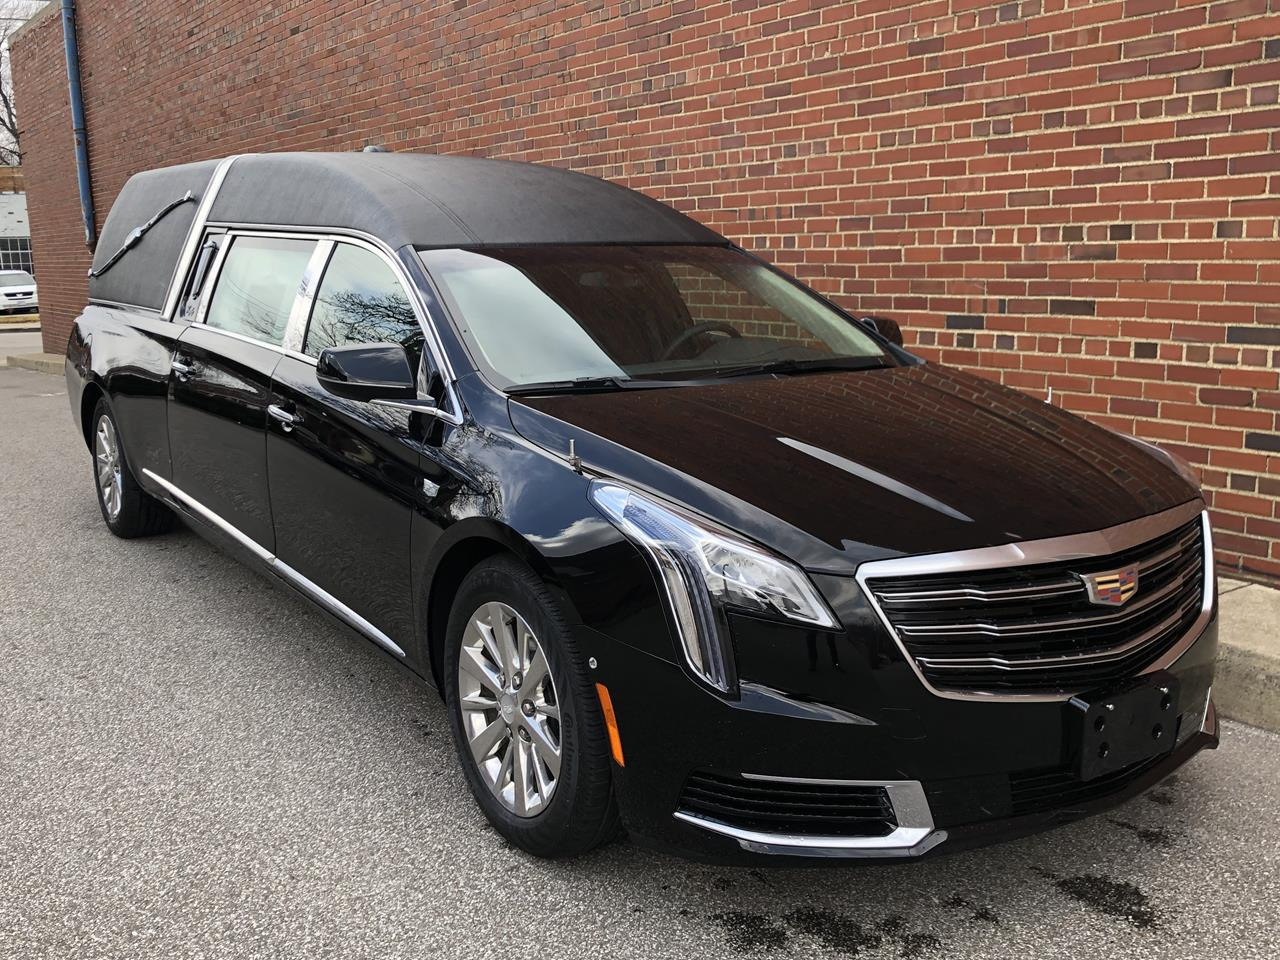 2019 Cadillac Eagle Kingsley Hearse 19 2